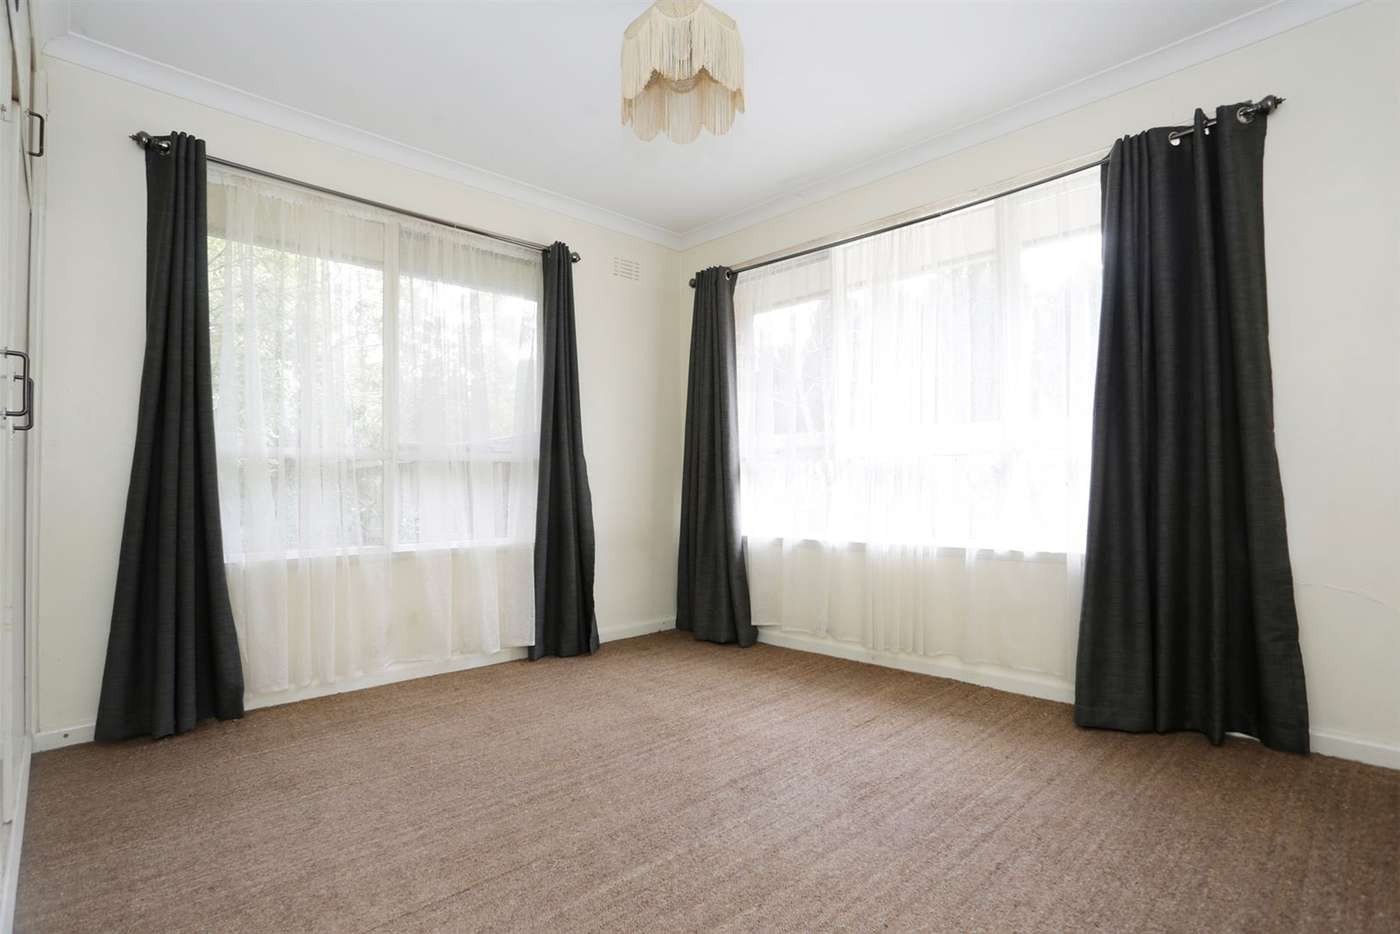 Seventh view of Homely unit listing, 1/46 Marianne Way, Mount Waverley VIC 3149